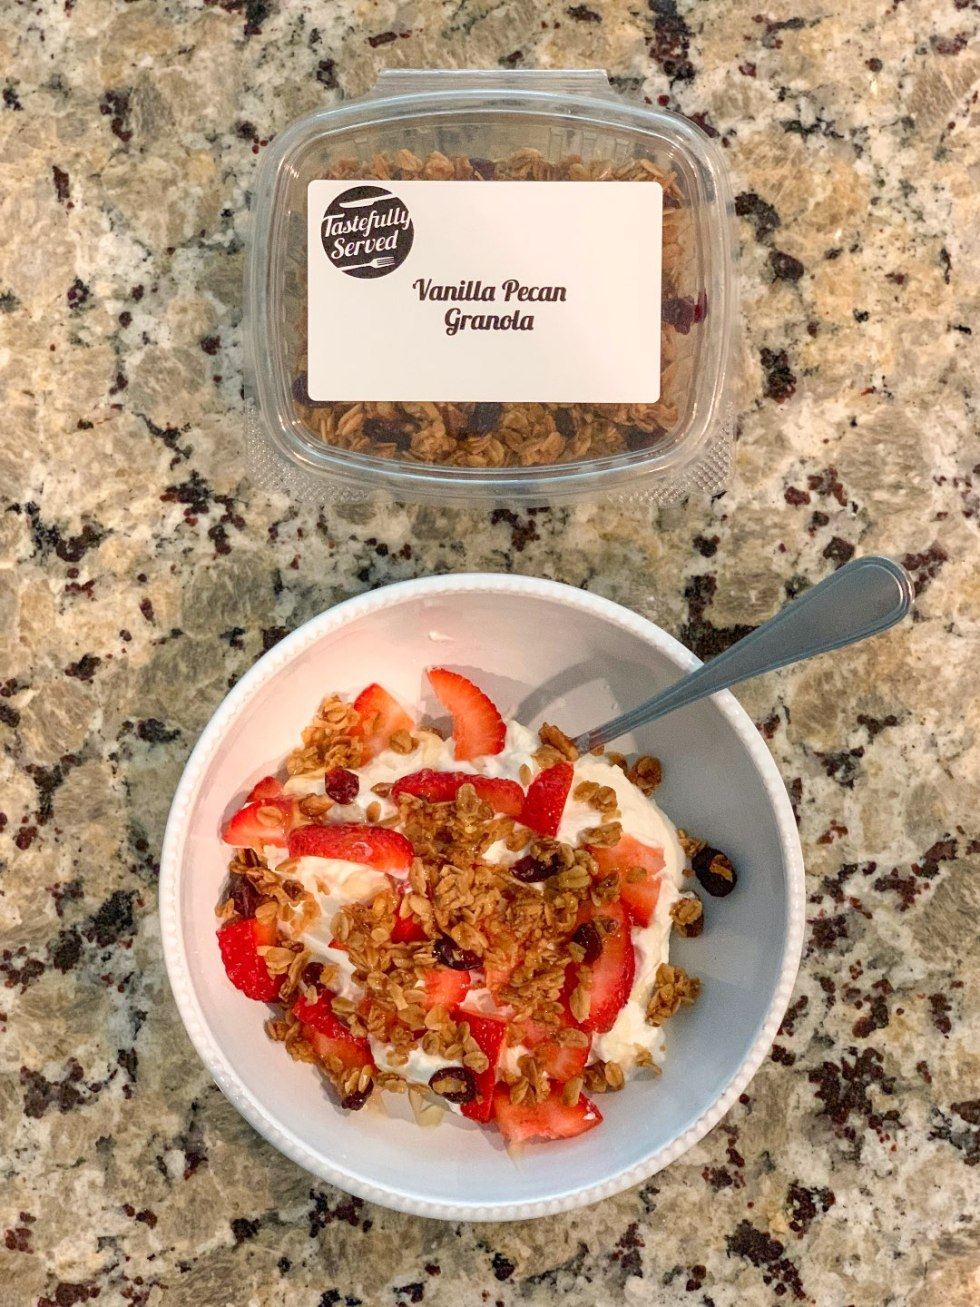 Weeknight Meal Ideas with Tastefully Served - I'm Fixin' To - @mbg0112 | Weeknight Meal Ideas with Tastefully Served by popular North Carolina lifestyle blogger, I'm Fixin' To: image of Tastefully Served Vanilla Pecan Granola.